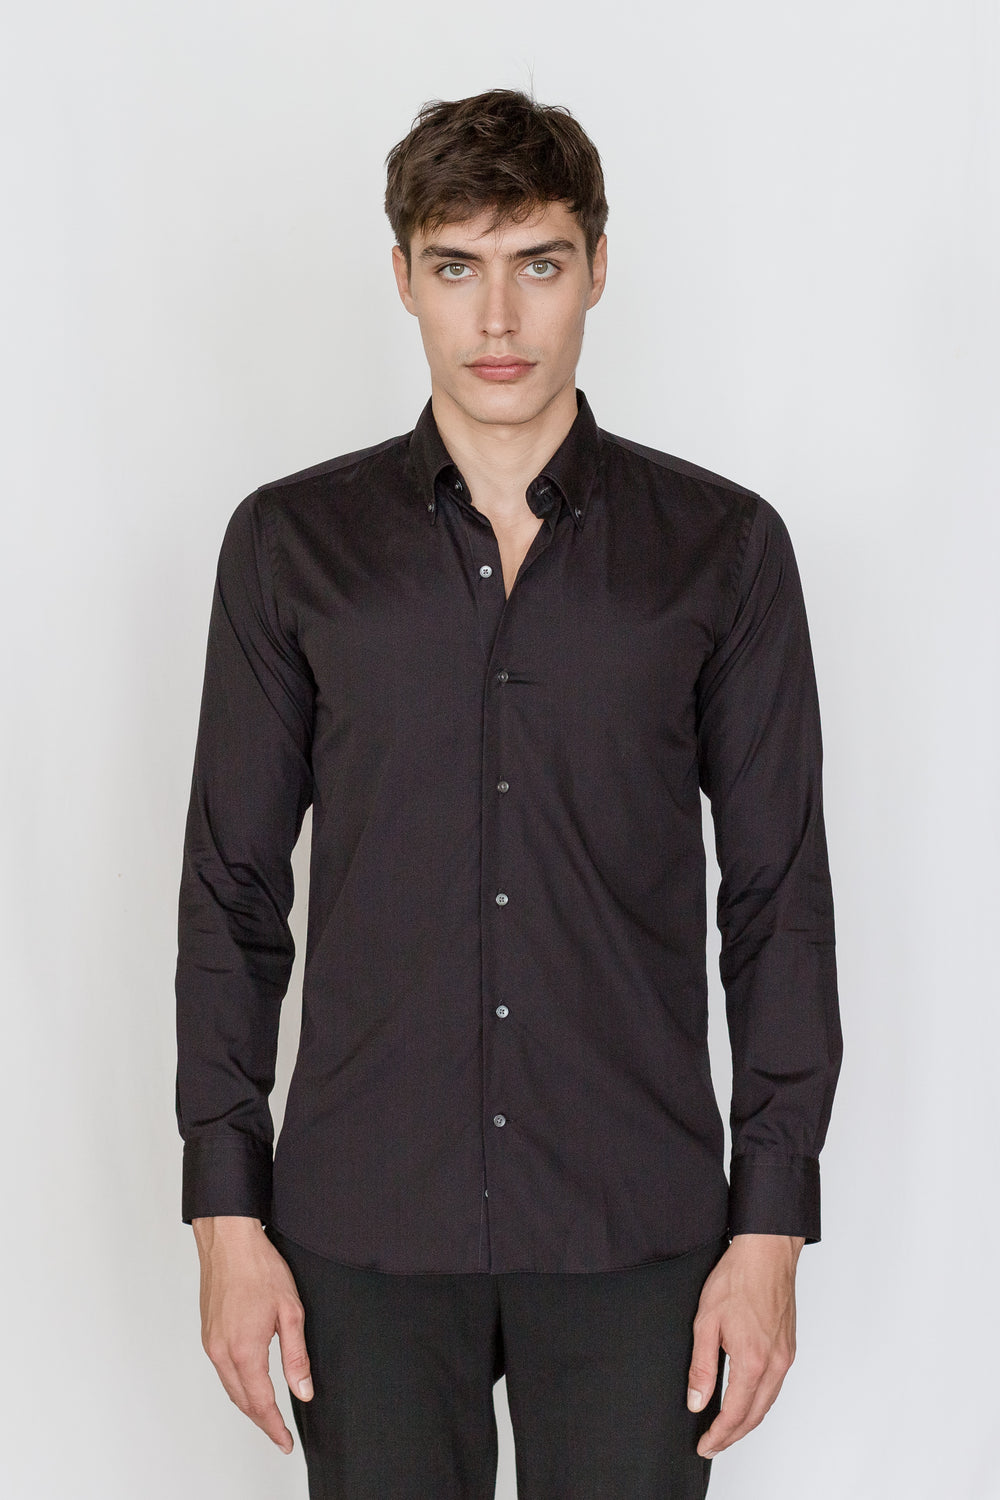 Mason Ward Odense Black Slim Fit/ Regular Cuff Shirt